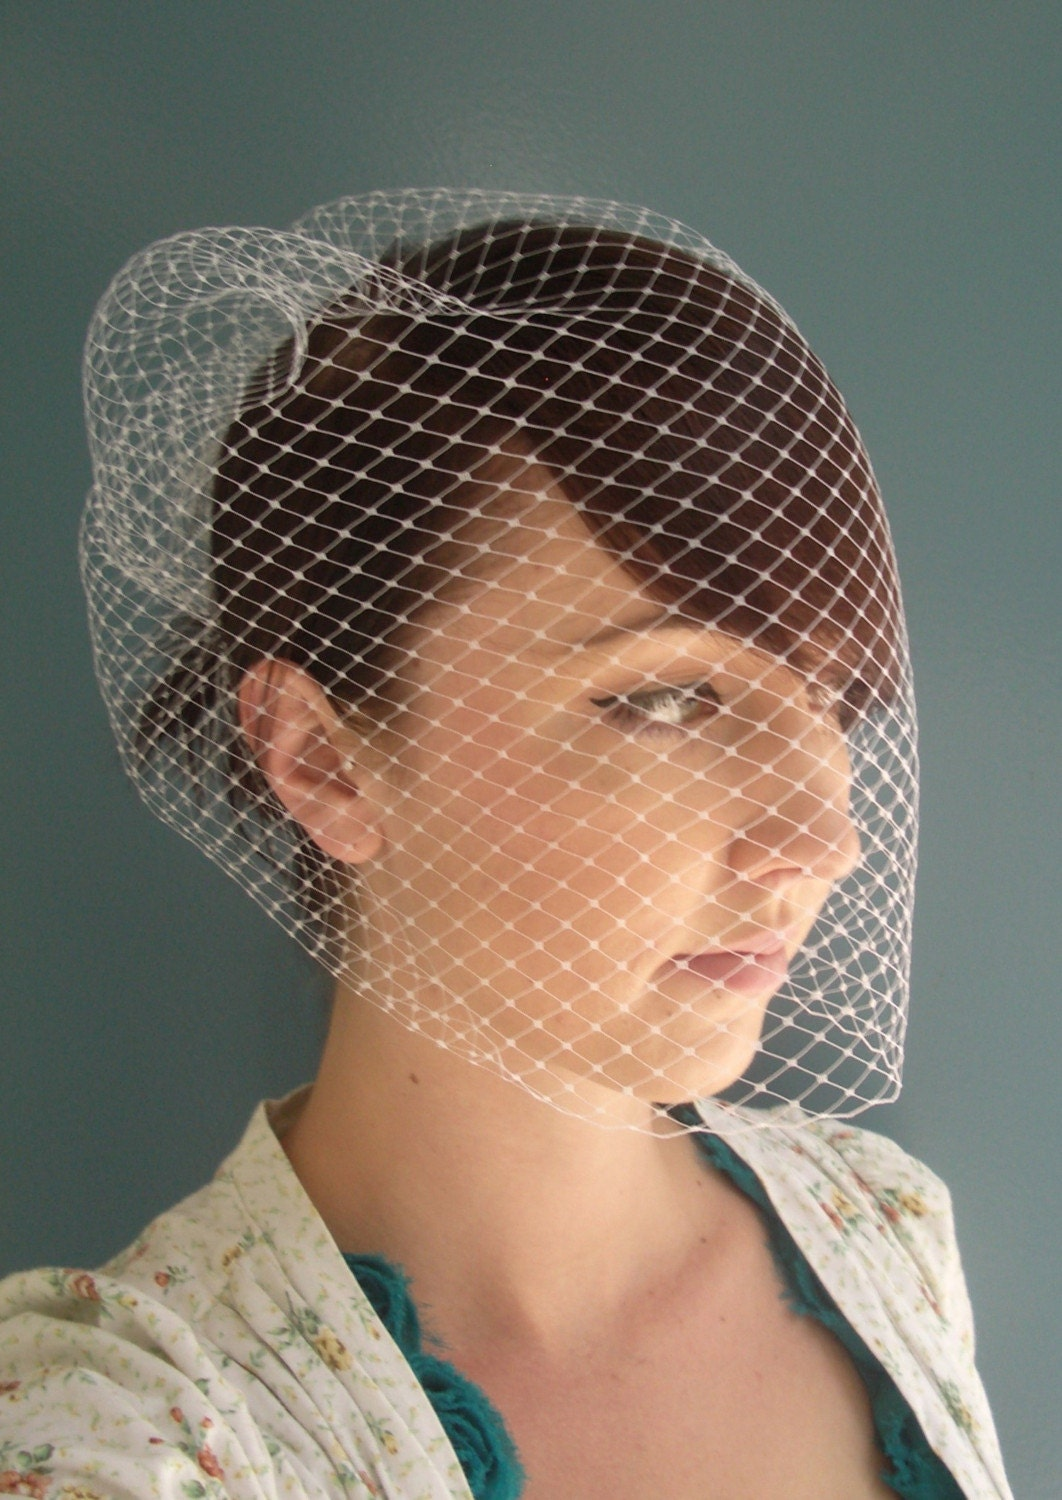 Birdcage Veil 18 inch - Bridal or Special Occasion by TessaKim on Etsy from etsy.com